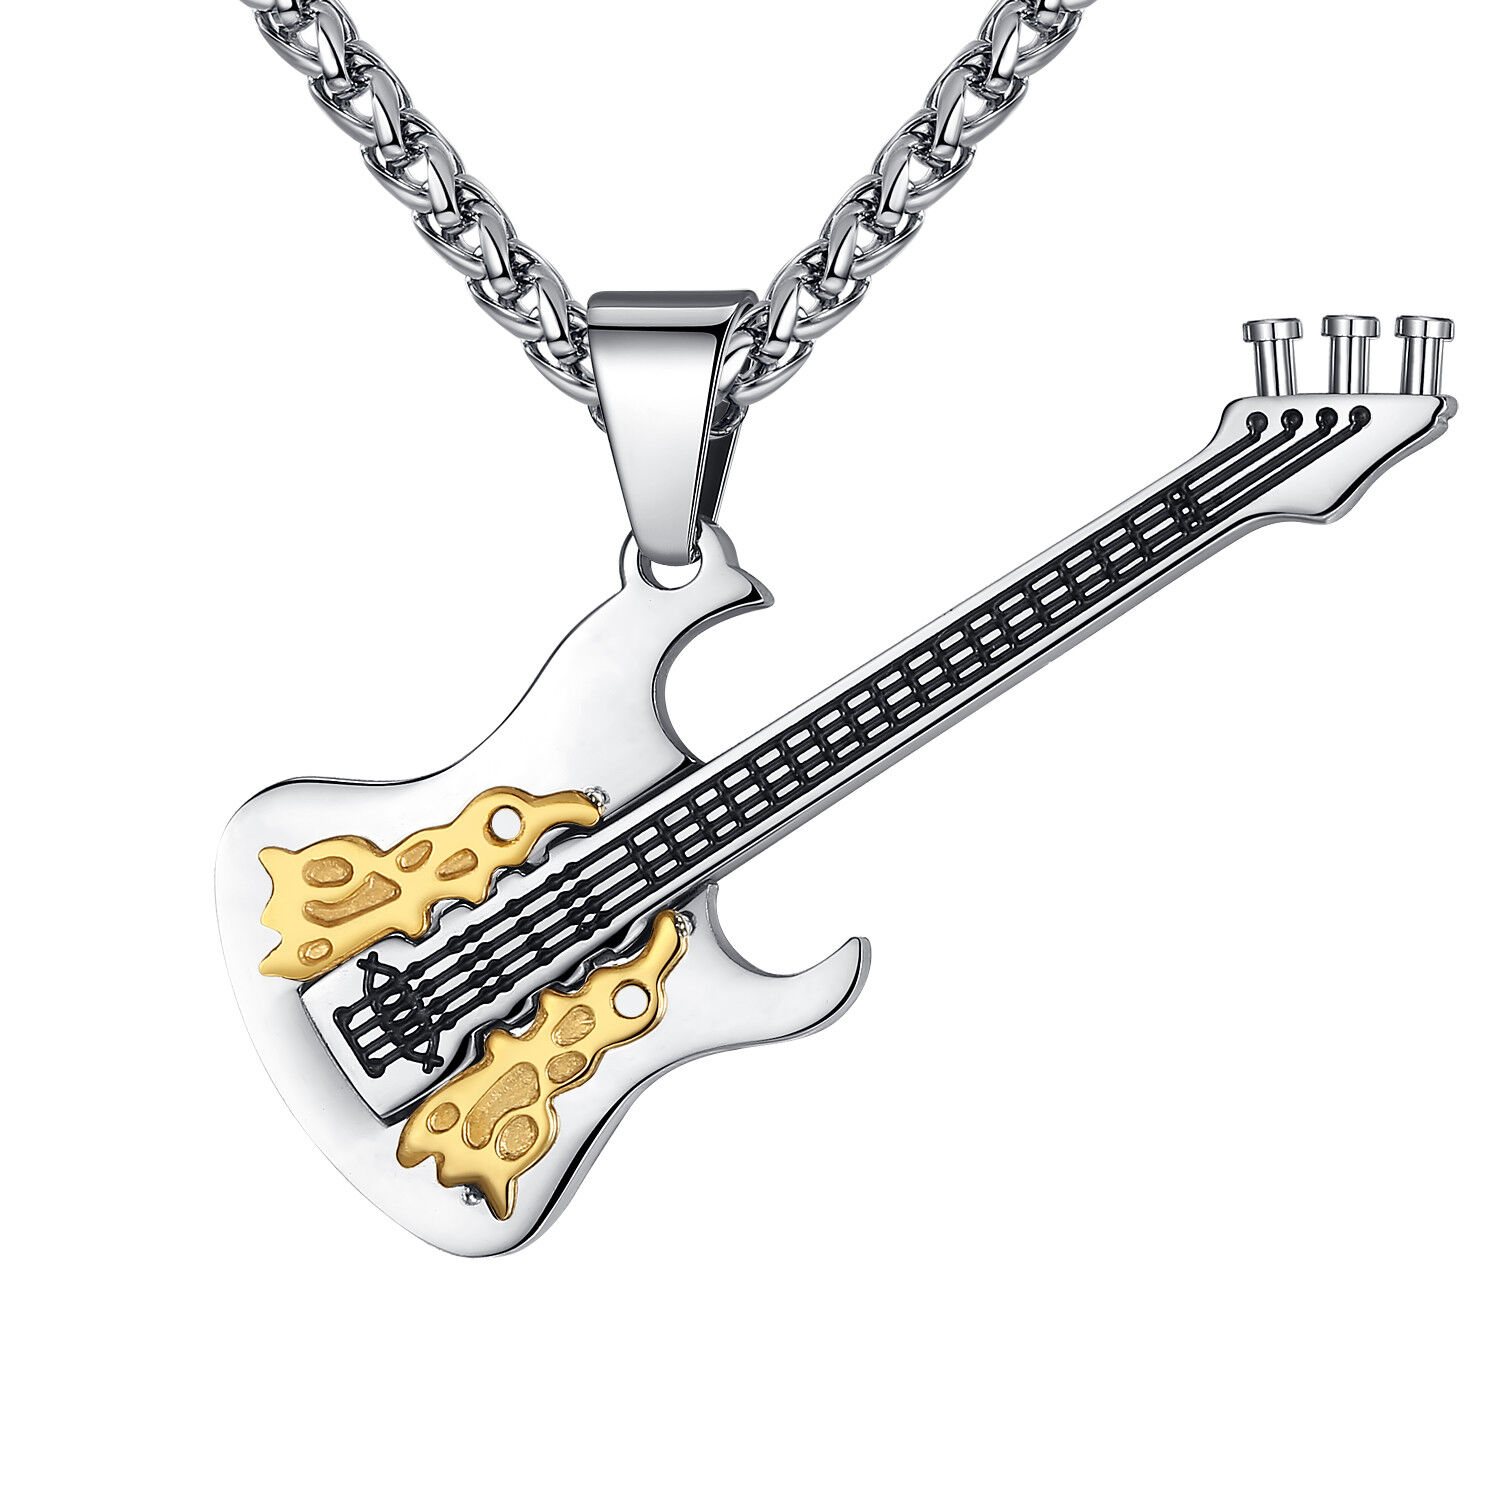 Men's Stainless Steel Rock and Roll Guitar Pendant Necklace Chains, Necklaces & Pendants